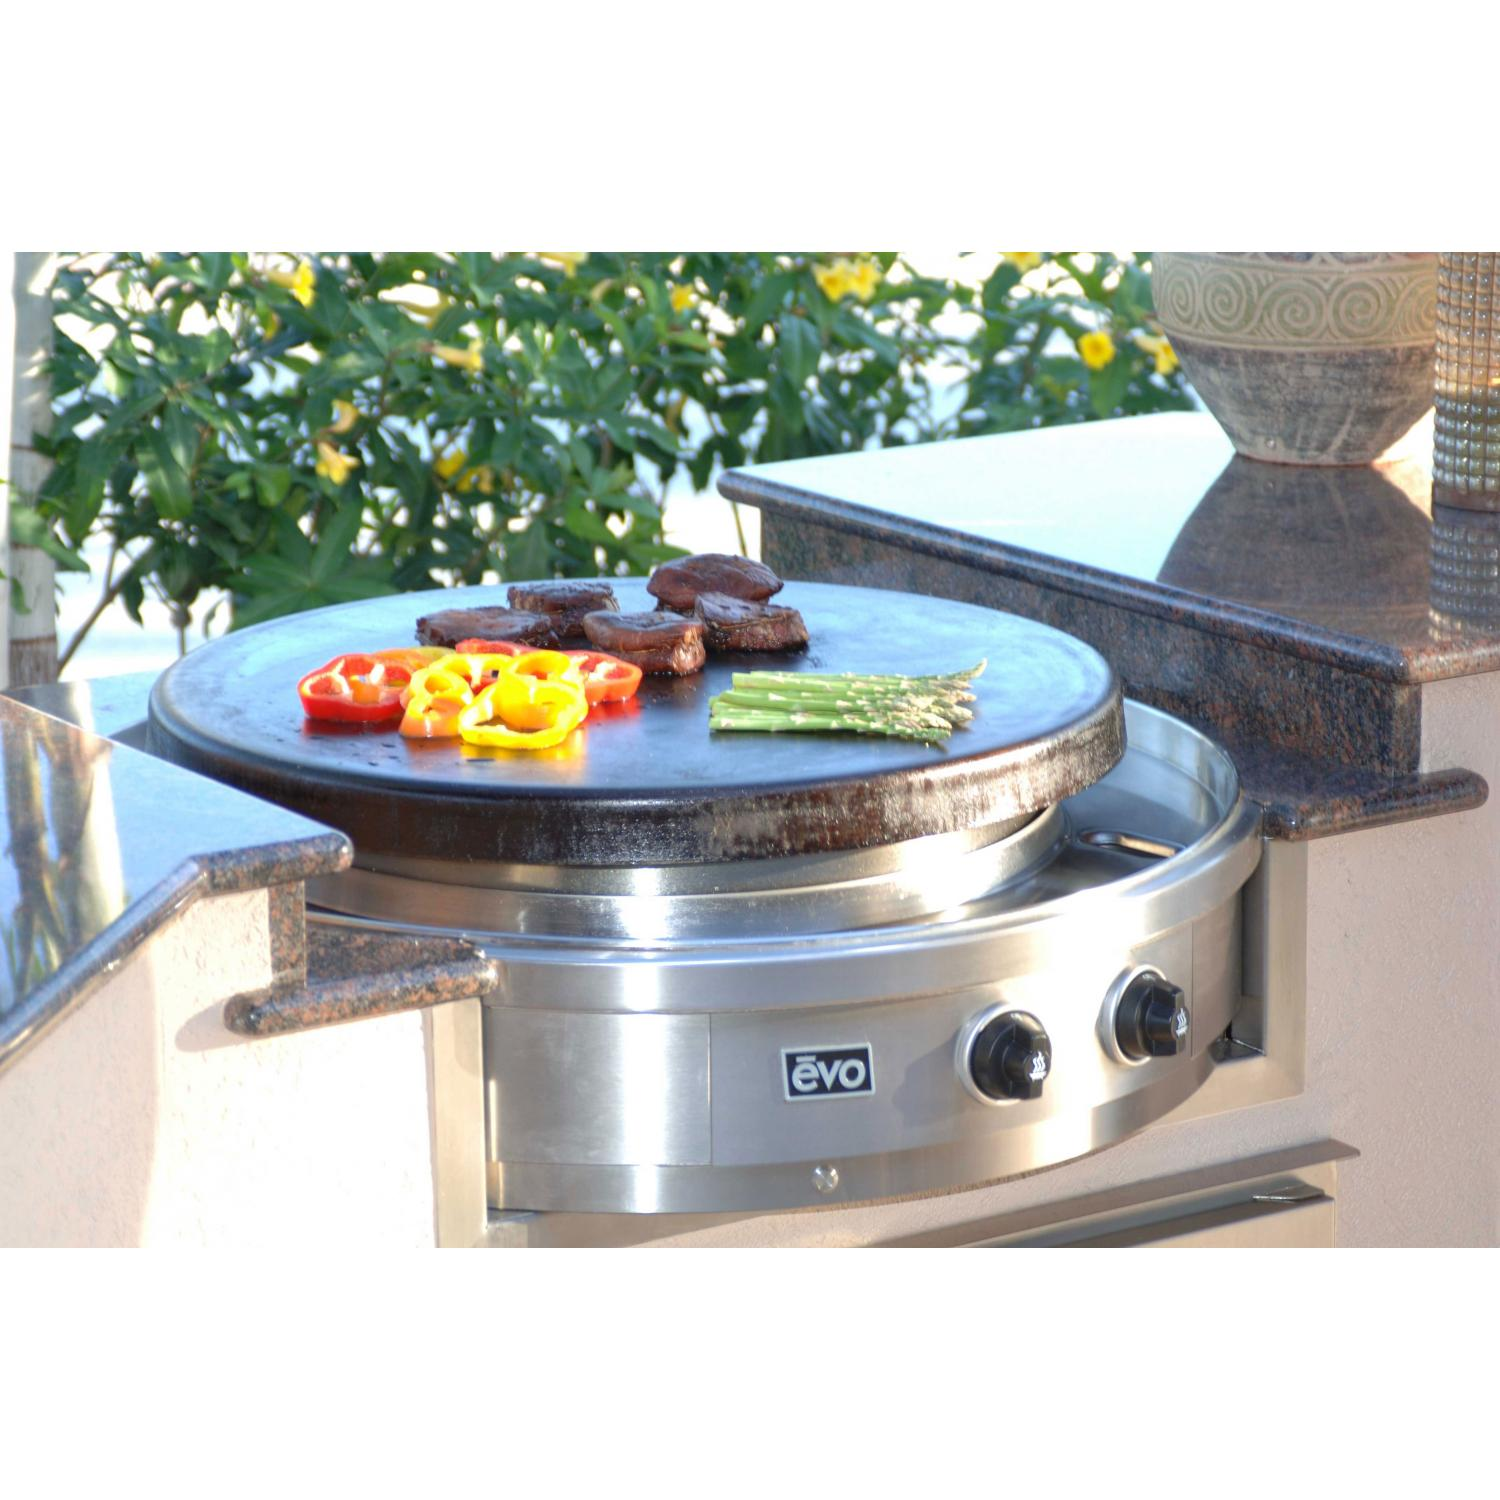 Evo Affinity 30G Built-In Flat-Top Propane Gas Grill - 10-0055-LP